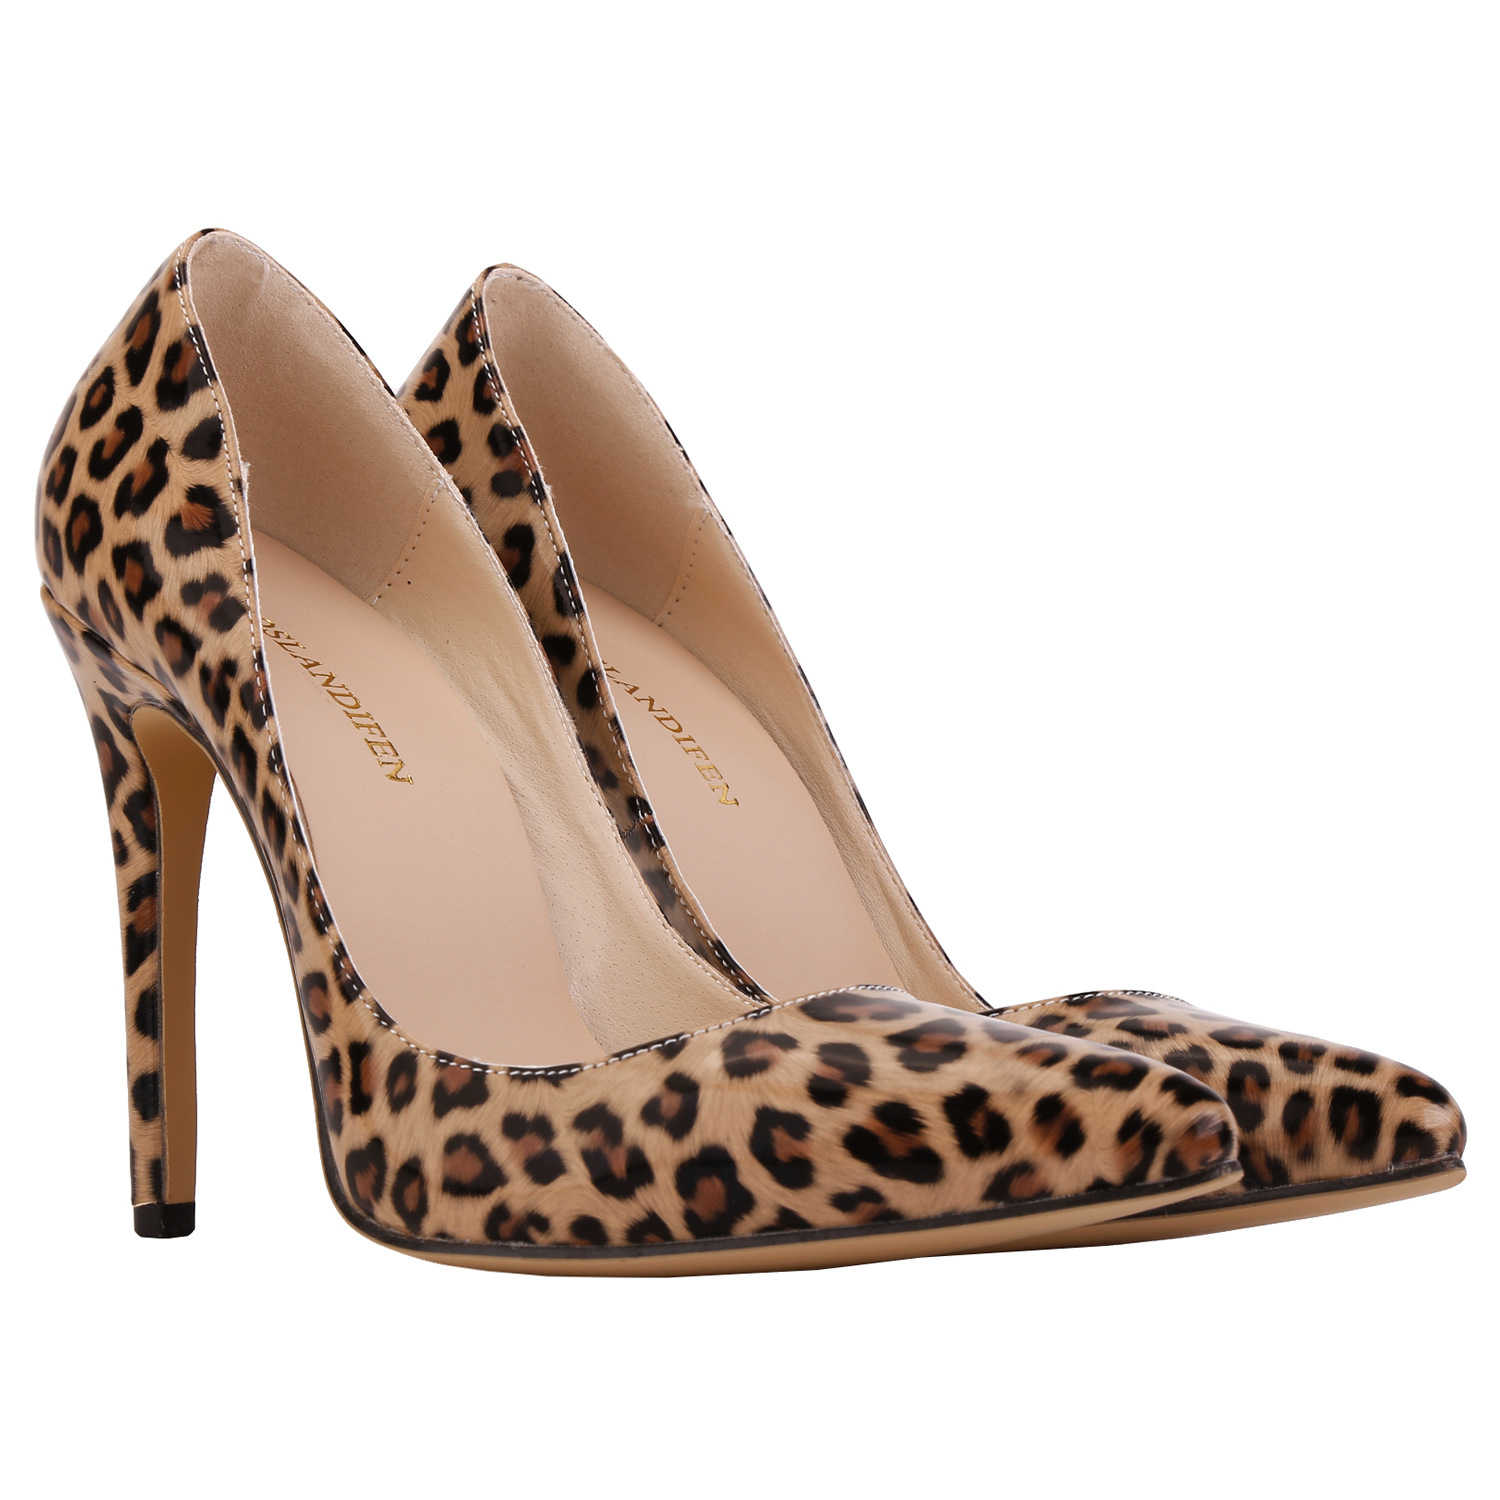 Candy color pointed high heels leopard printshoes shoes's main photo